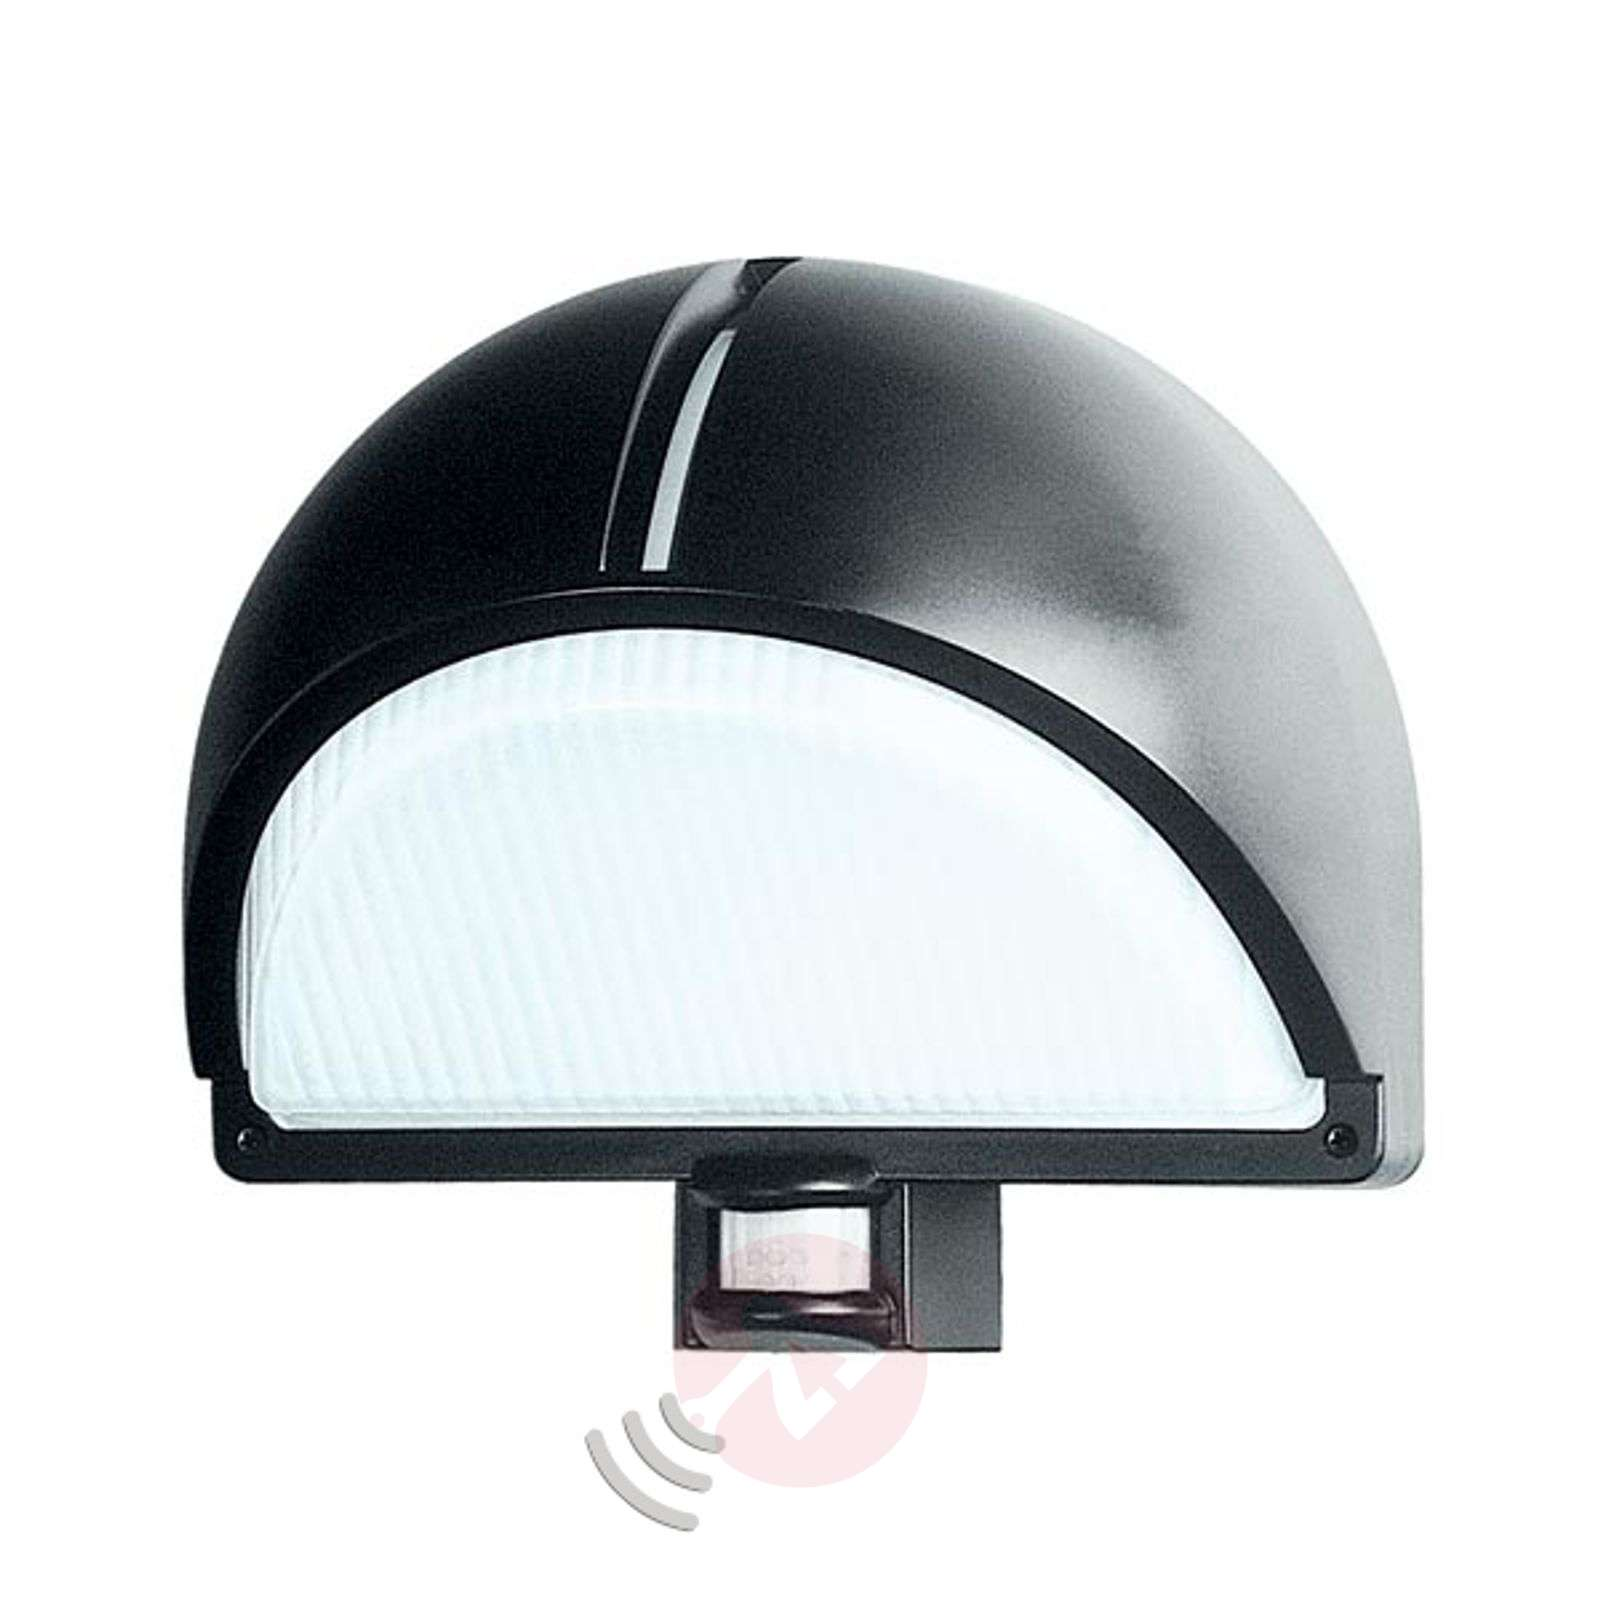 Outdoor wall lamp Polo 2 Detek with sensor, grey-7506280-02